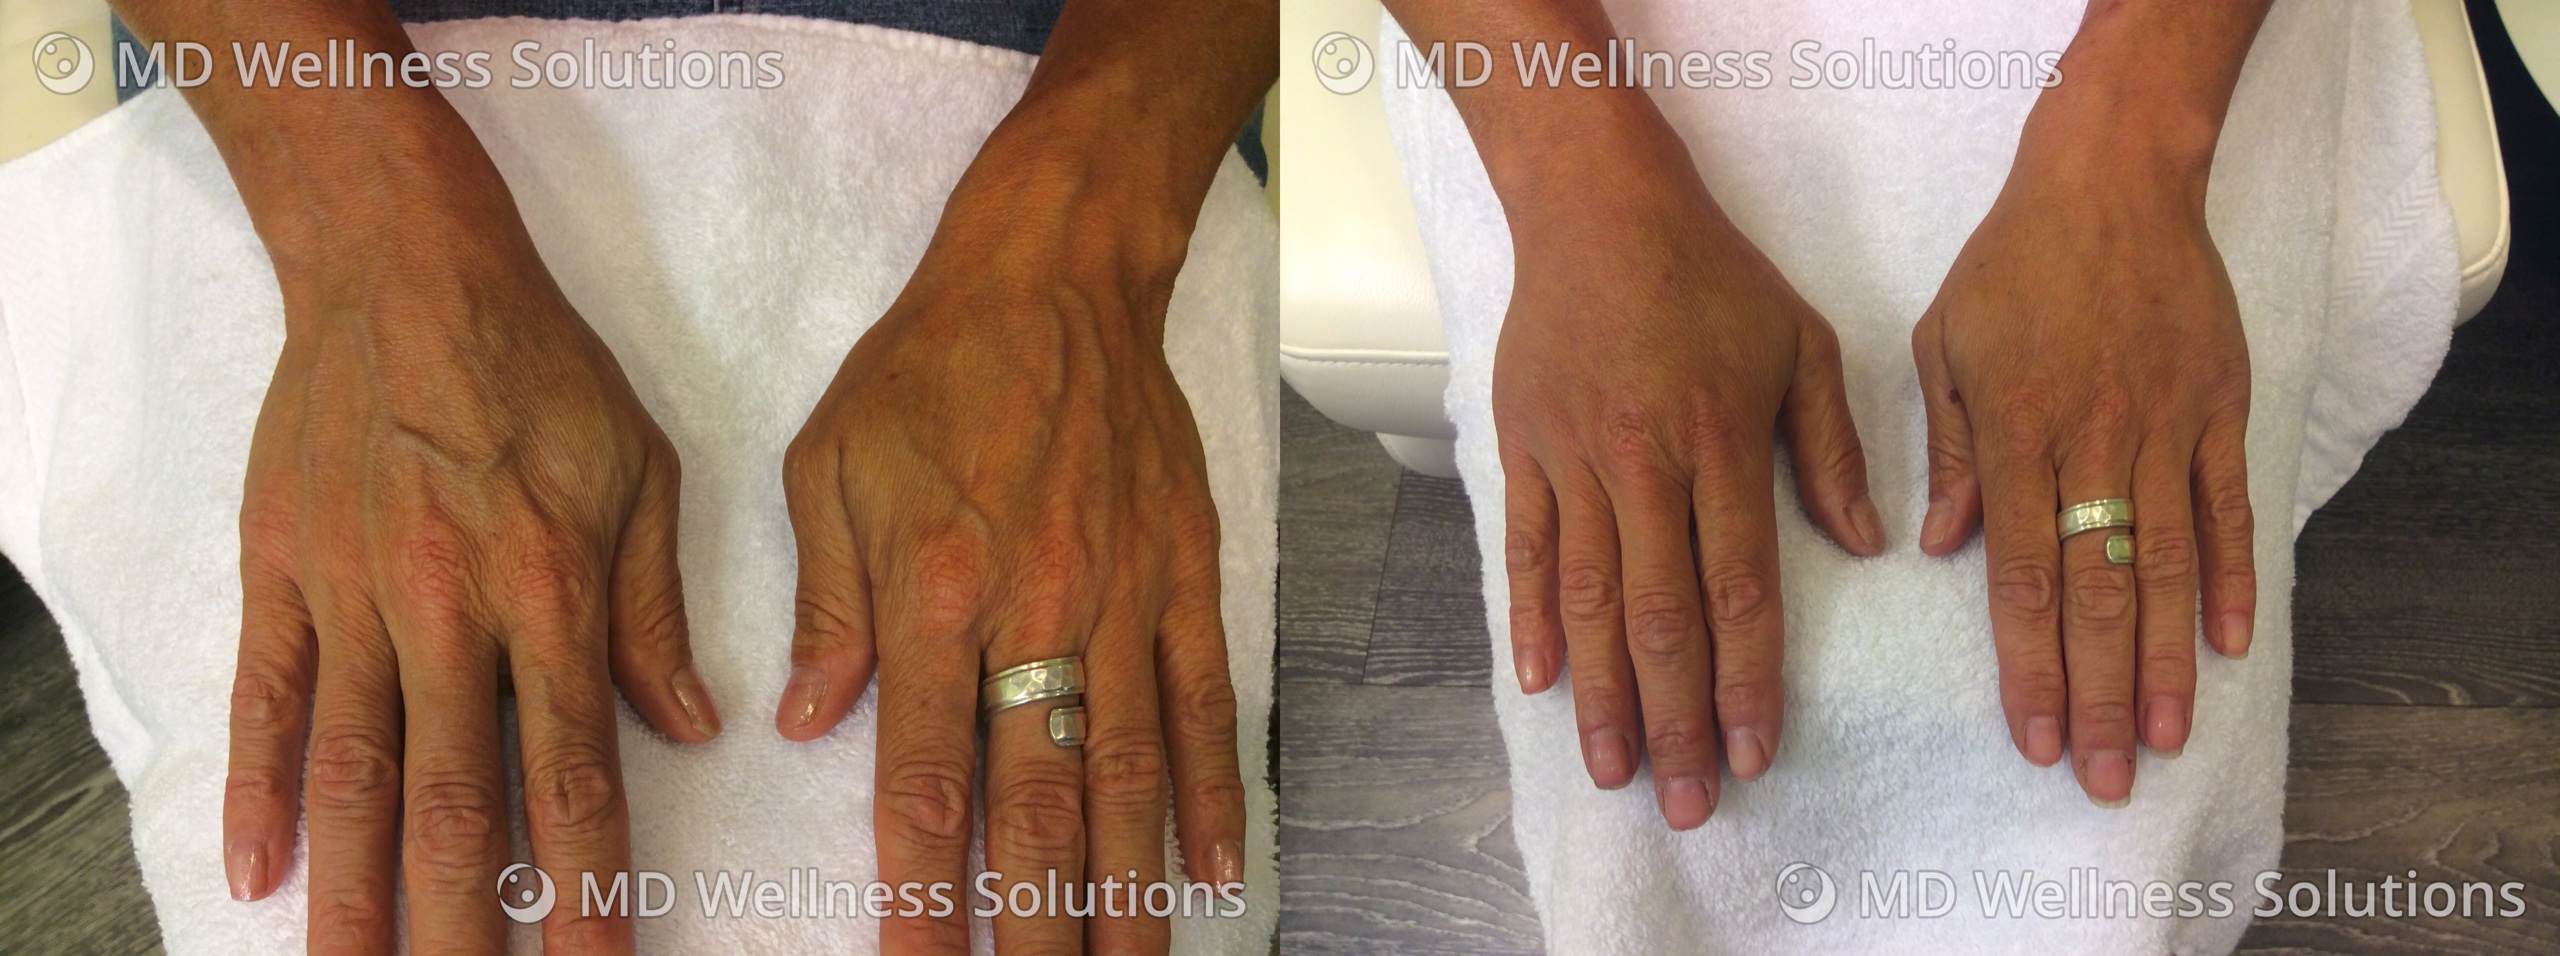 45-54 year old woman before and after hand filler treatment